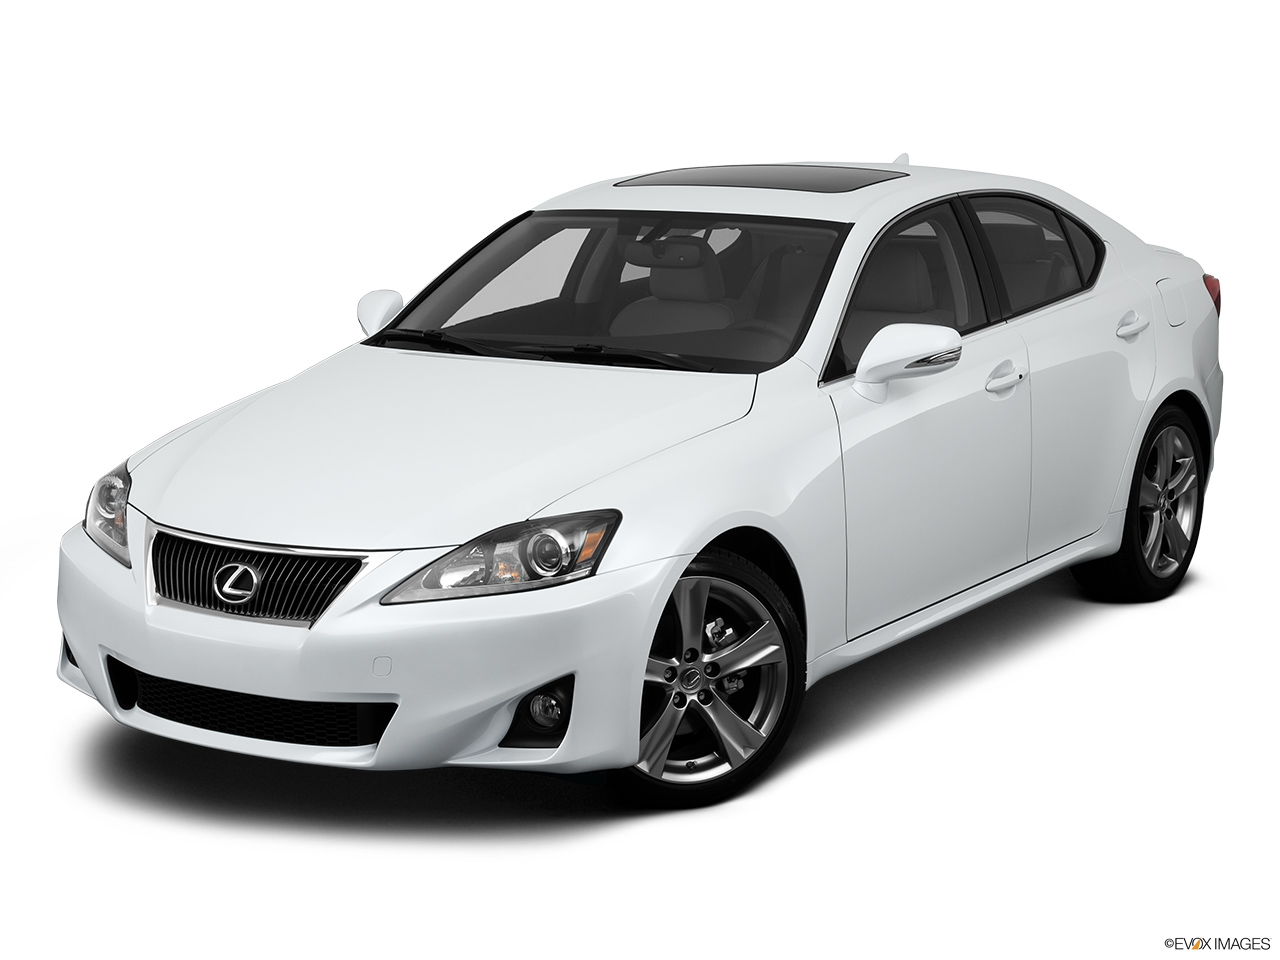 2013 Lexus IS 250 IS 250 RWD Front angle view.